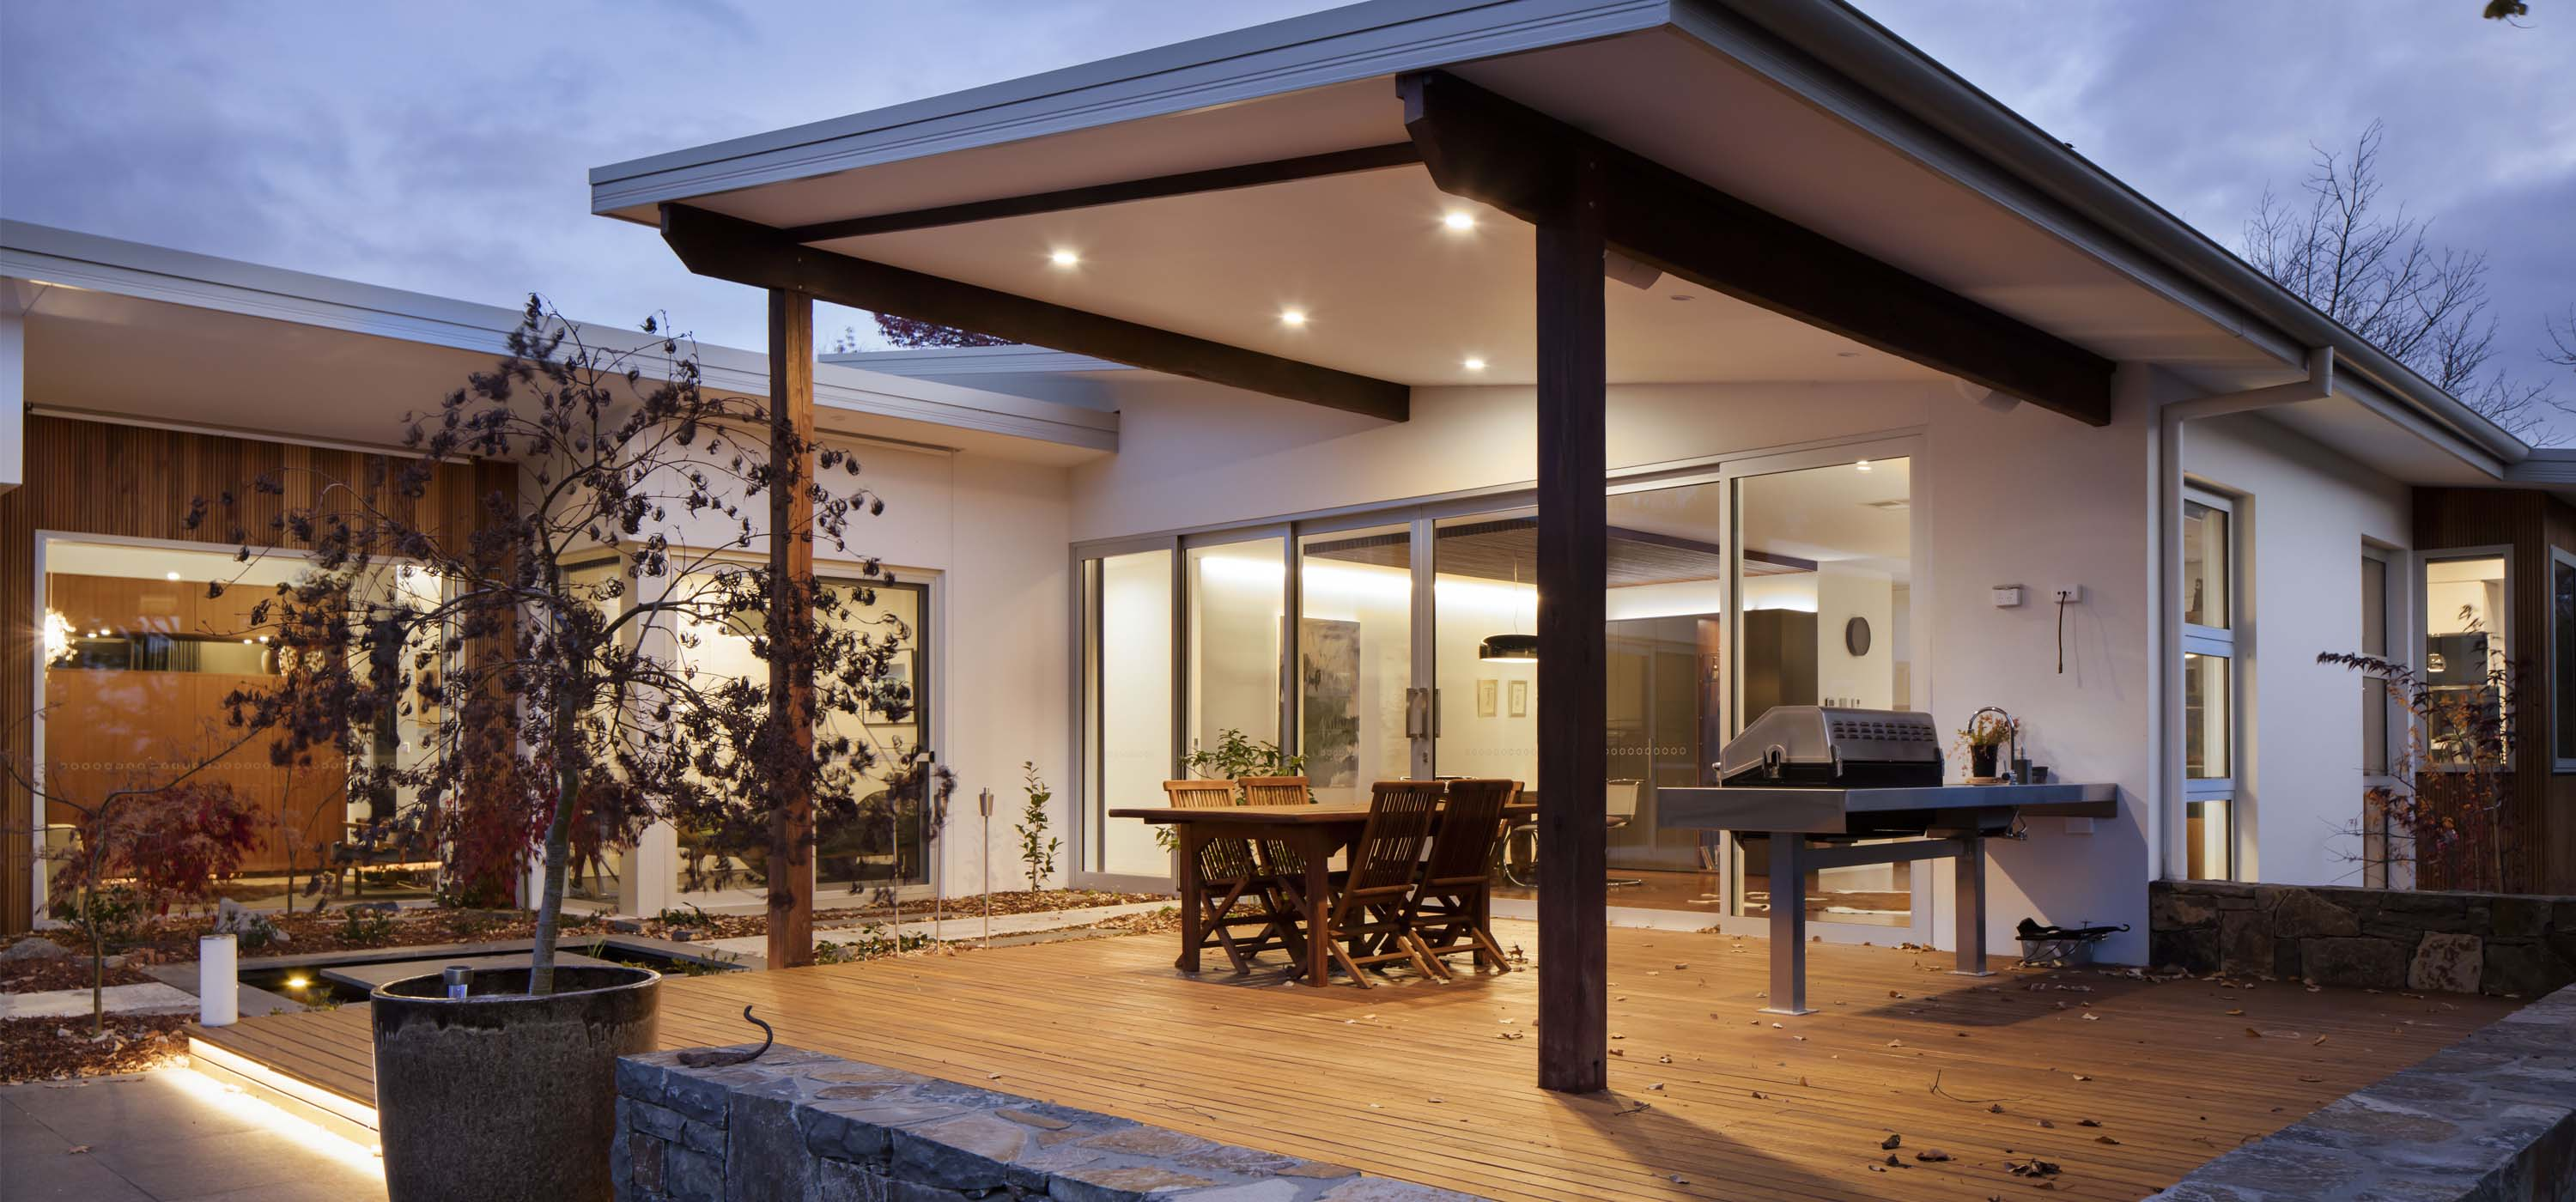 Preferred Builders Is A Canberra Based Company Owned And